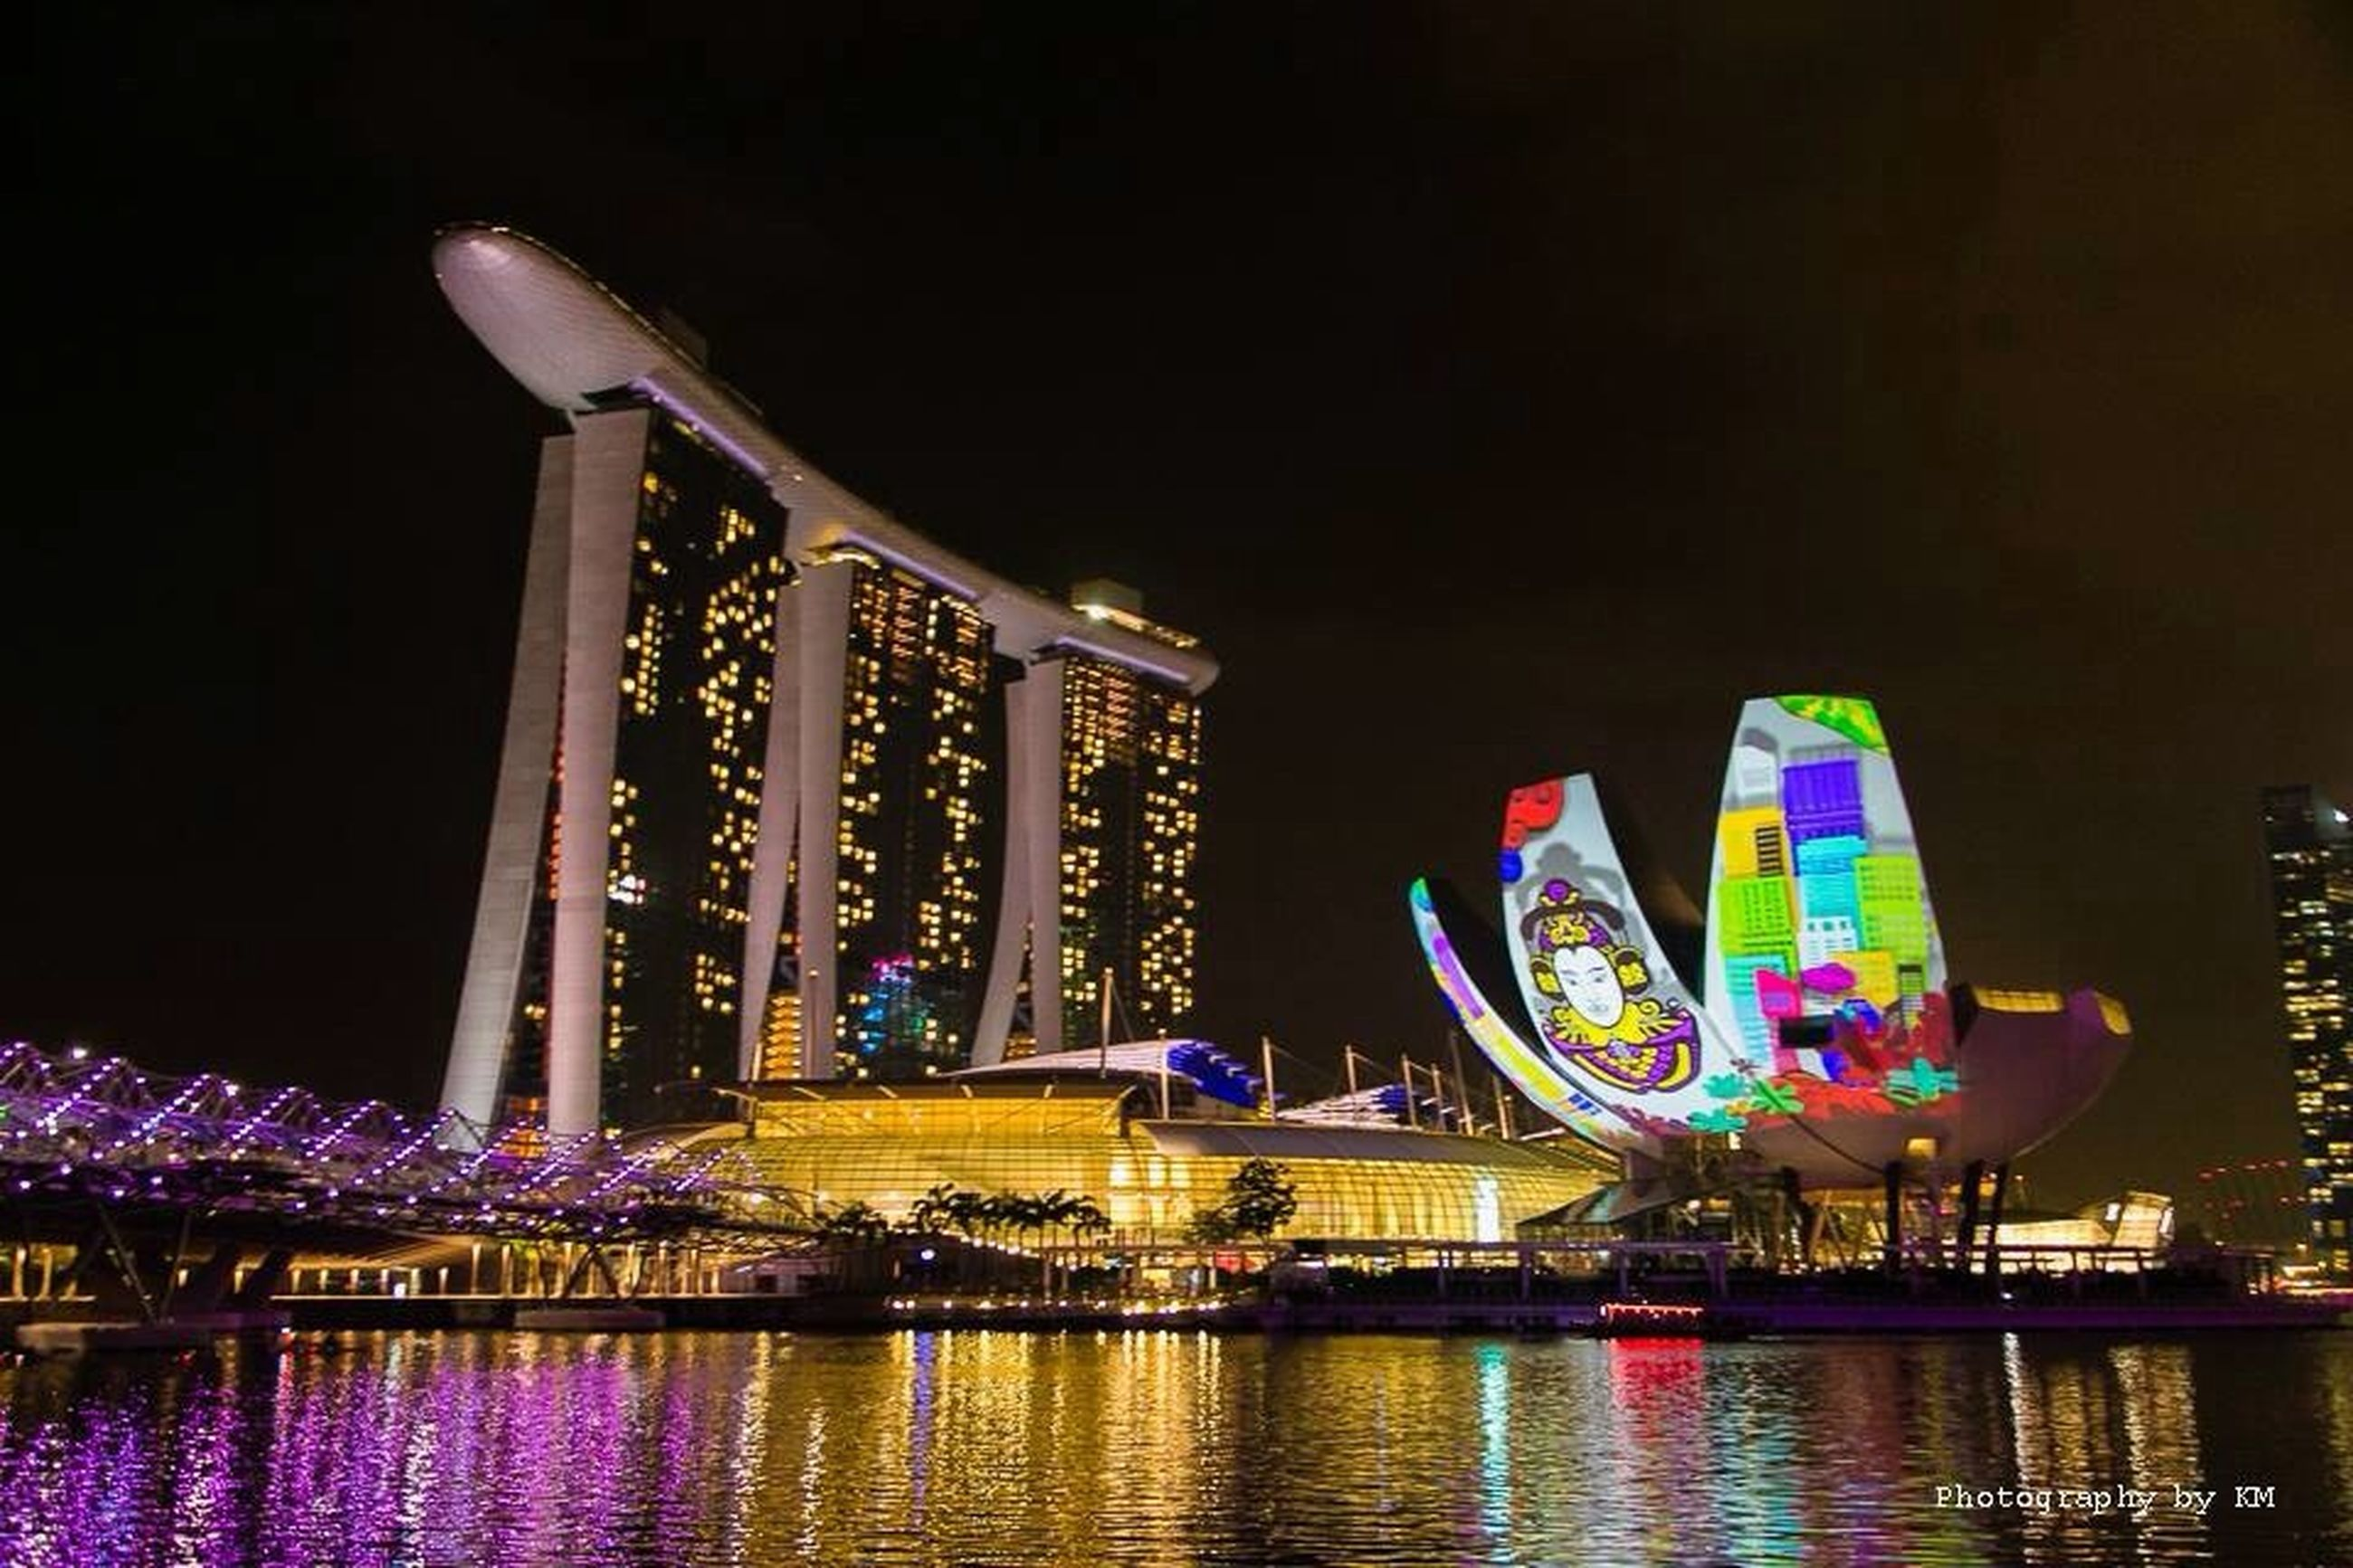 illuminated, night, water, built structure, reflection, architecture, waterfront, multi colored, building exterior, river, blue, lighting equipment, outdoors, no people, light - natural phenomenon, sky, light, decoration, arts culture and entertainment, clear sky